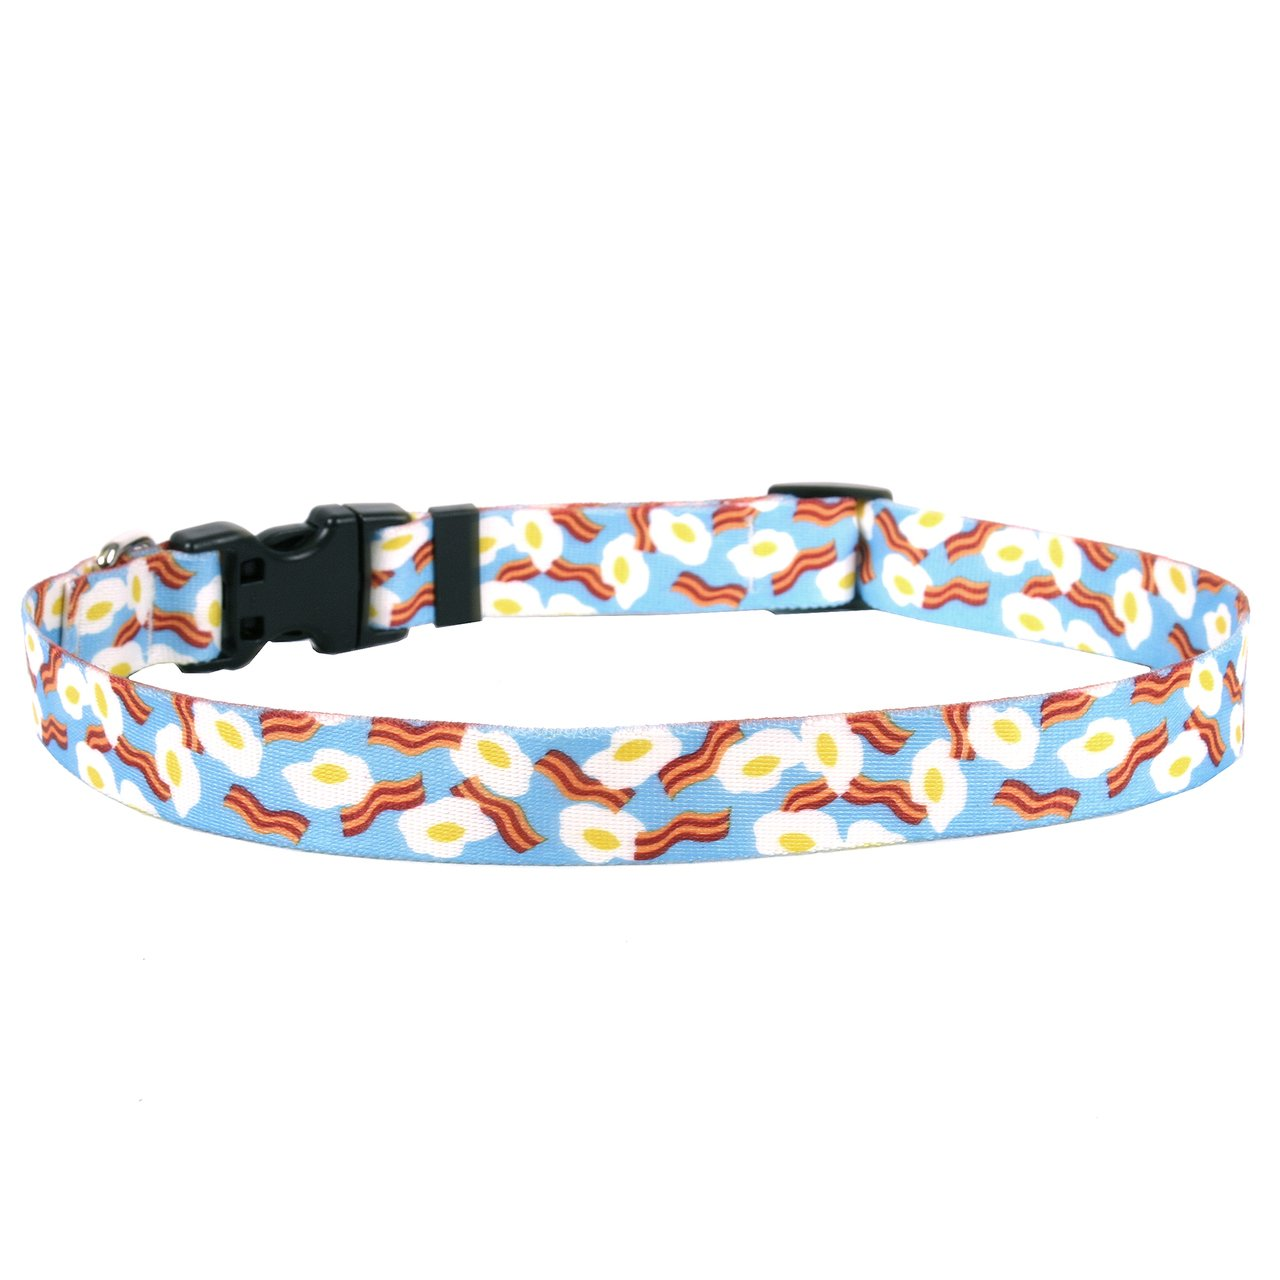 Yellow Dog Design Standard Easy-Snap Pet Collar, Bacon & Eggs, Small 10'' - 14'' by Yellow Dog Design (Image #1)